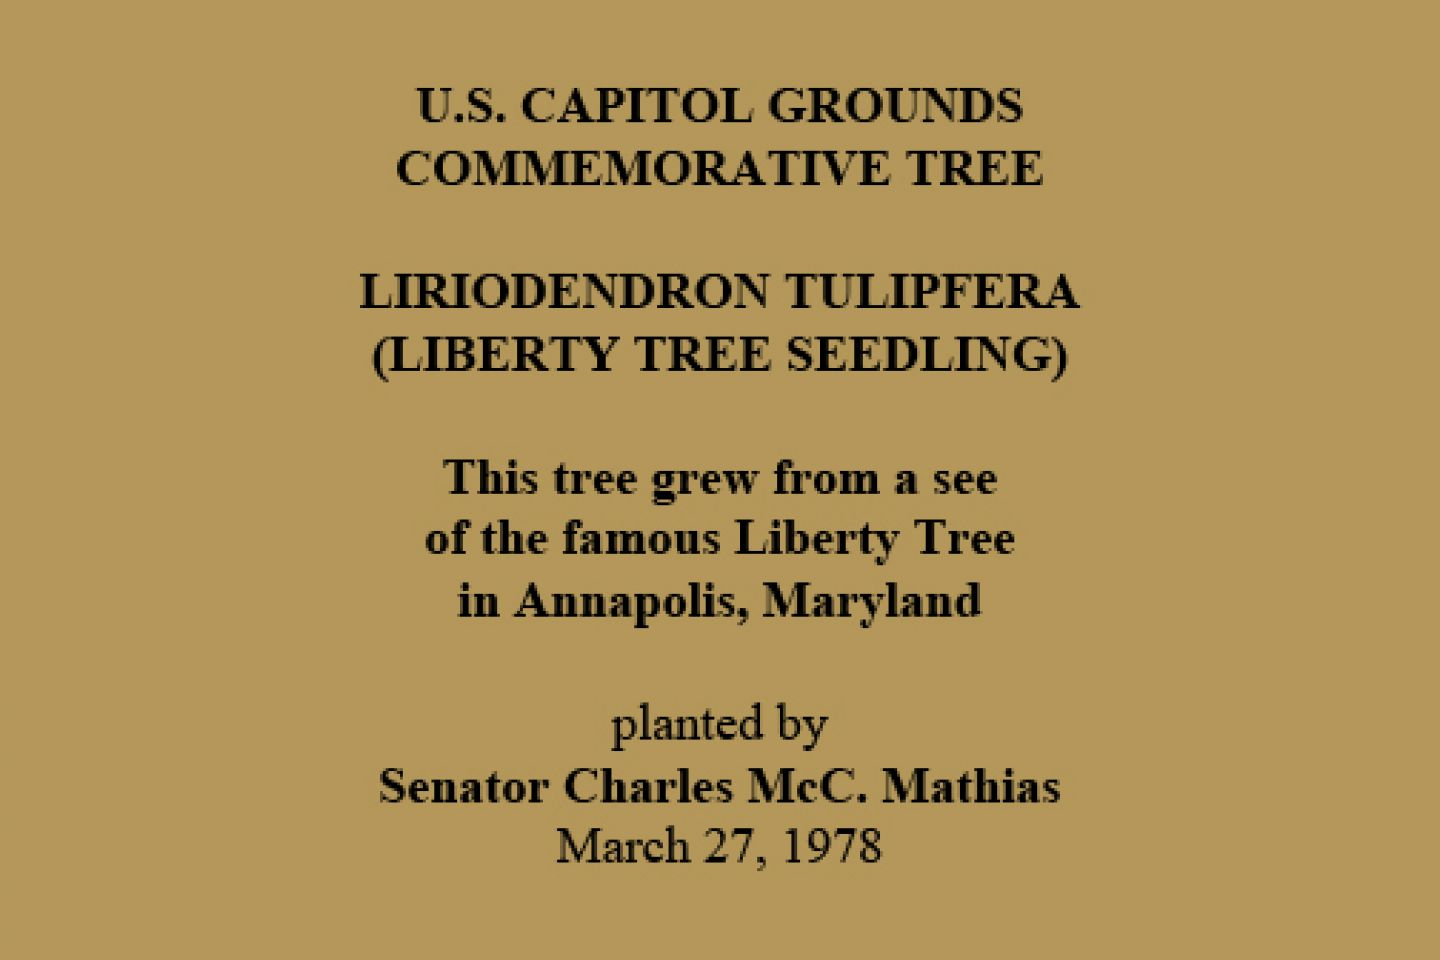 U.S. Capitol Grounds Commemorative Tree  Liriodendron tulipfera (Liberty Tree Seedling)  This tree grew from a see of the famous Liberty Tree in Annapolis, Maryland  planted by Senator Charles McC. Mathias March 27, 1978